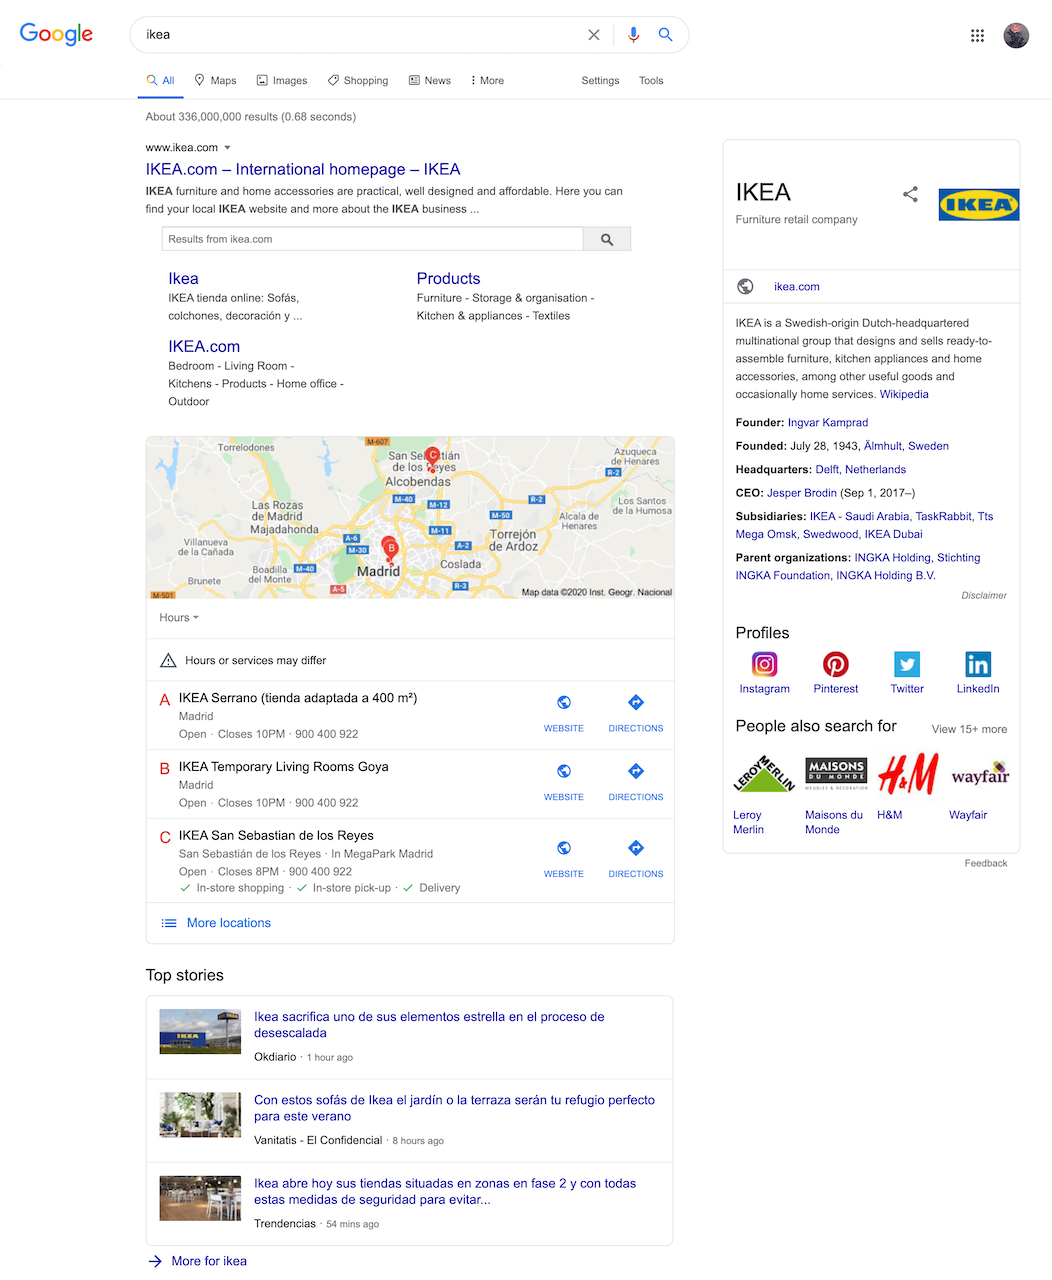 Top stories in between traditional results in Google SERPs